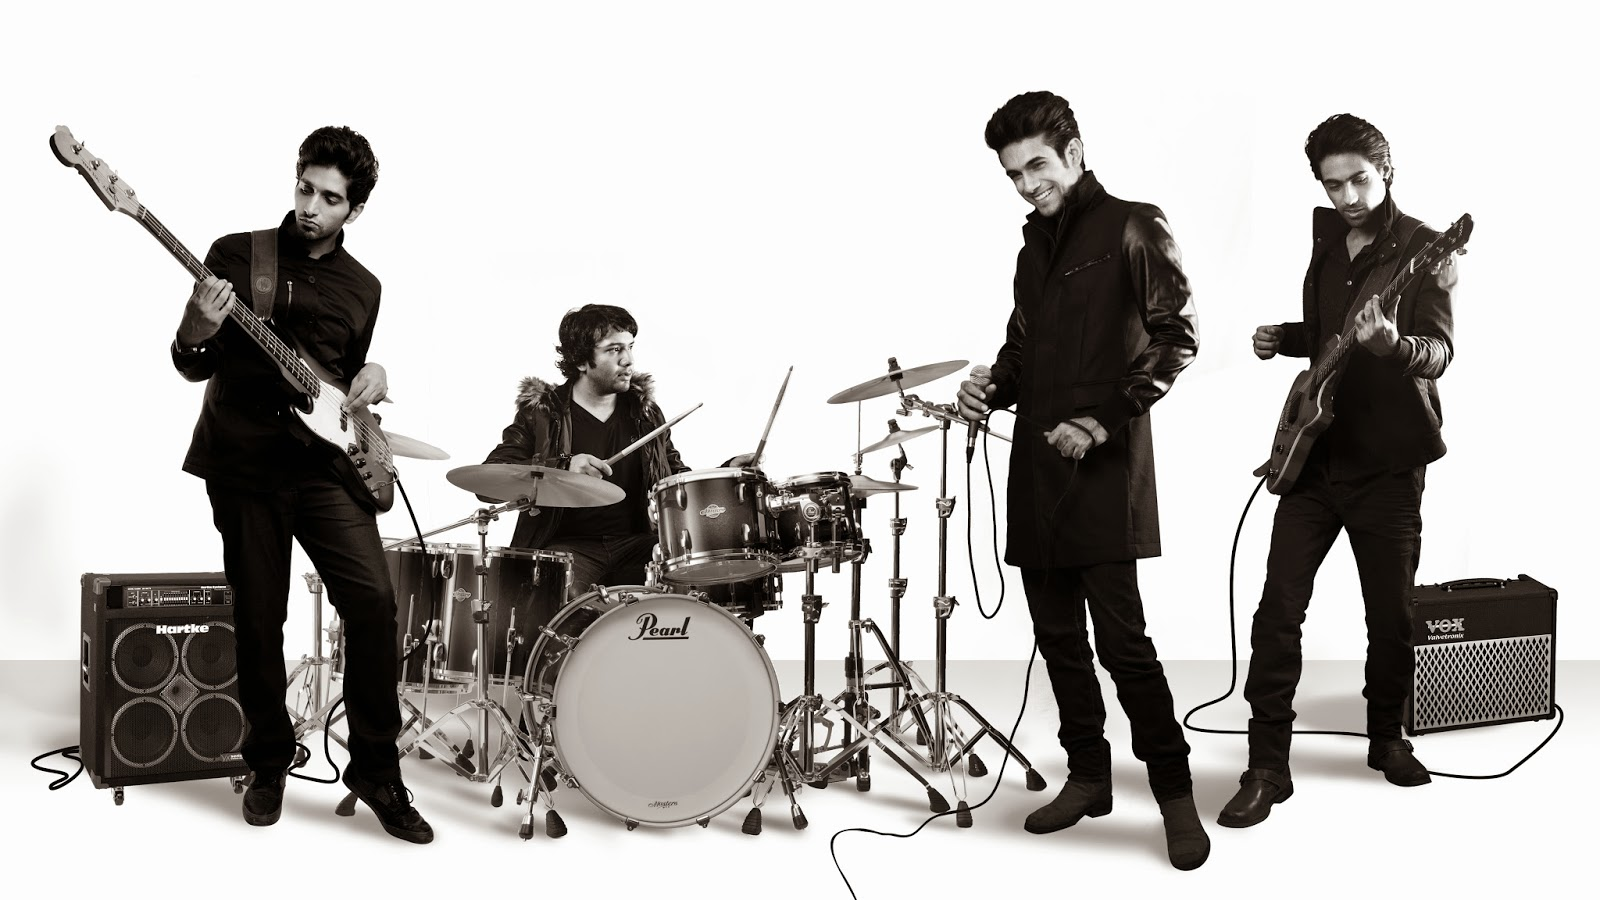 band sanam pop pluspng acoustic songs 1600 india musicians listen lyrics give beats mtv release single ek ladki dekha ko